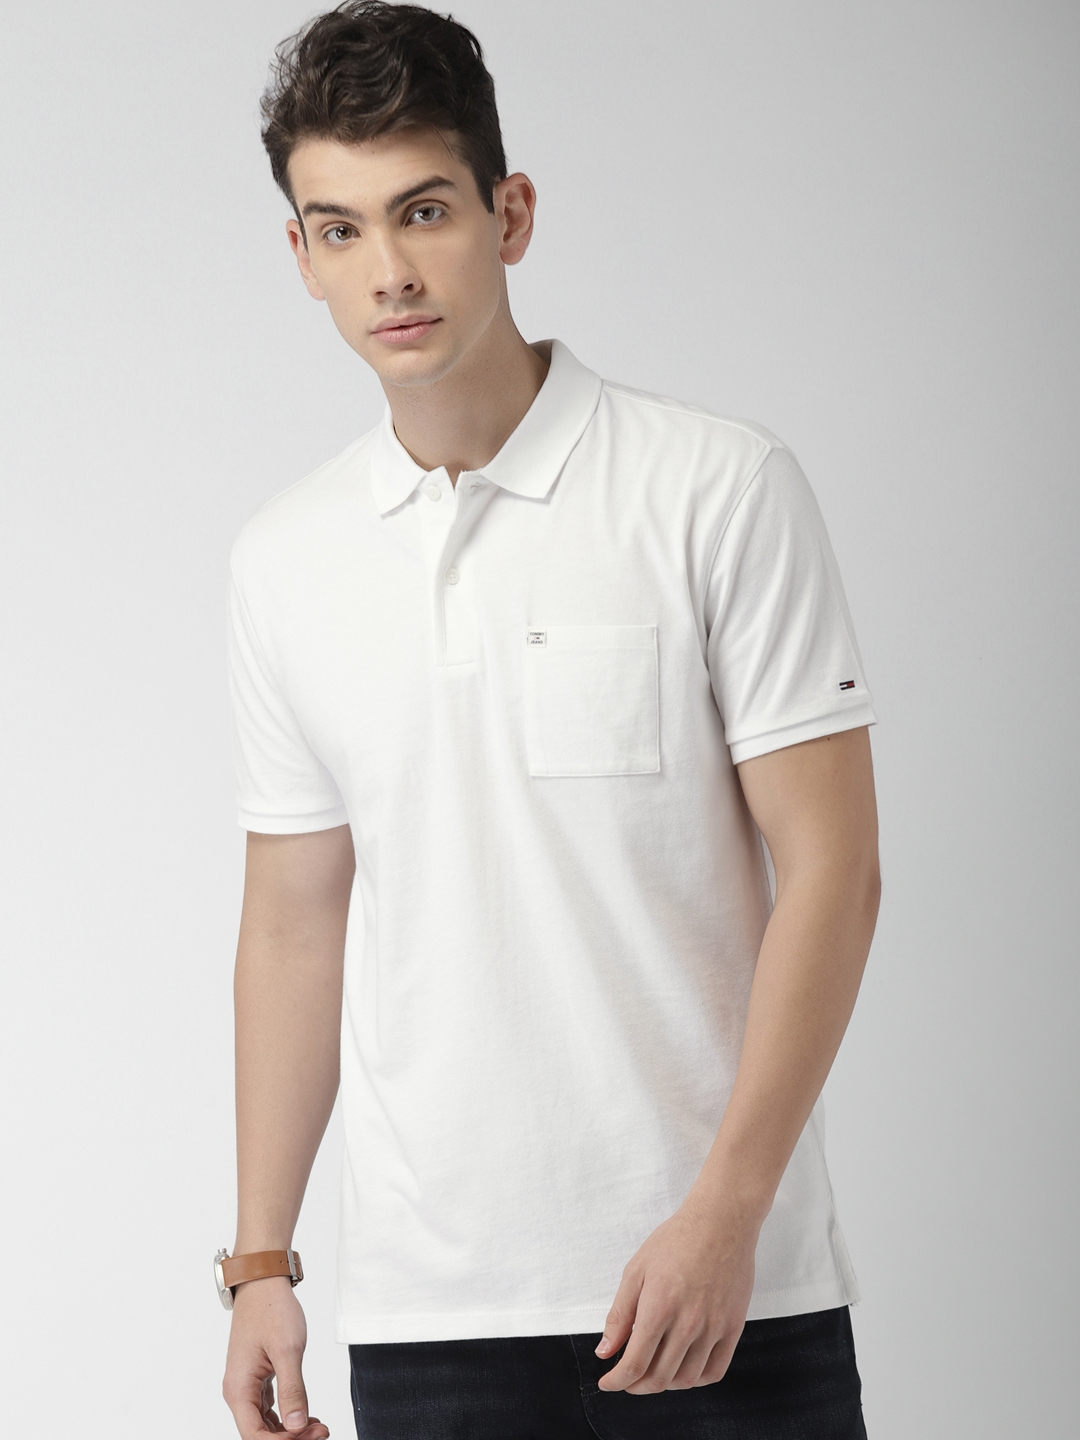 5119bbdeeac5 Buy Tommy Hilfiger Men White Solid Polo T Shirt - Tshirts for Men ...